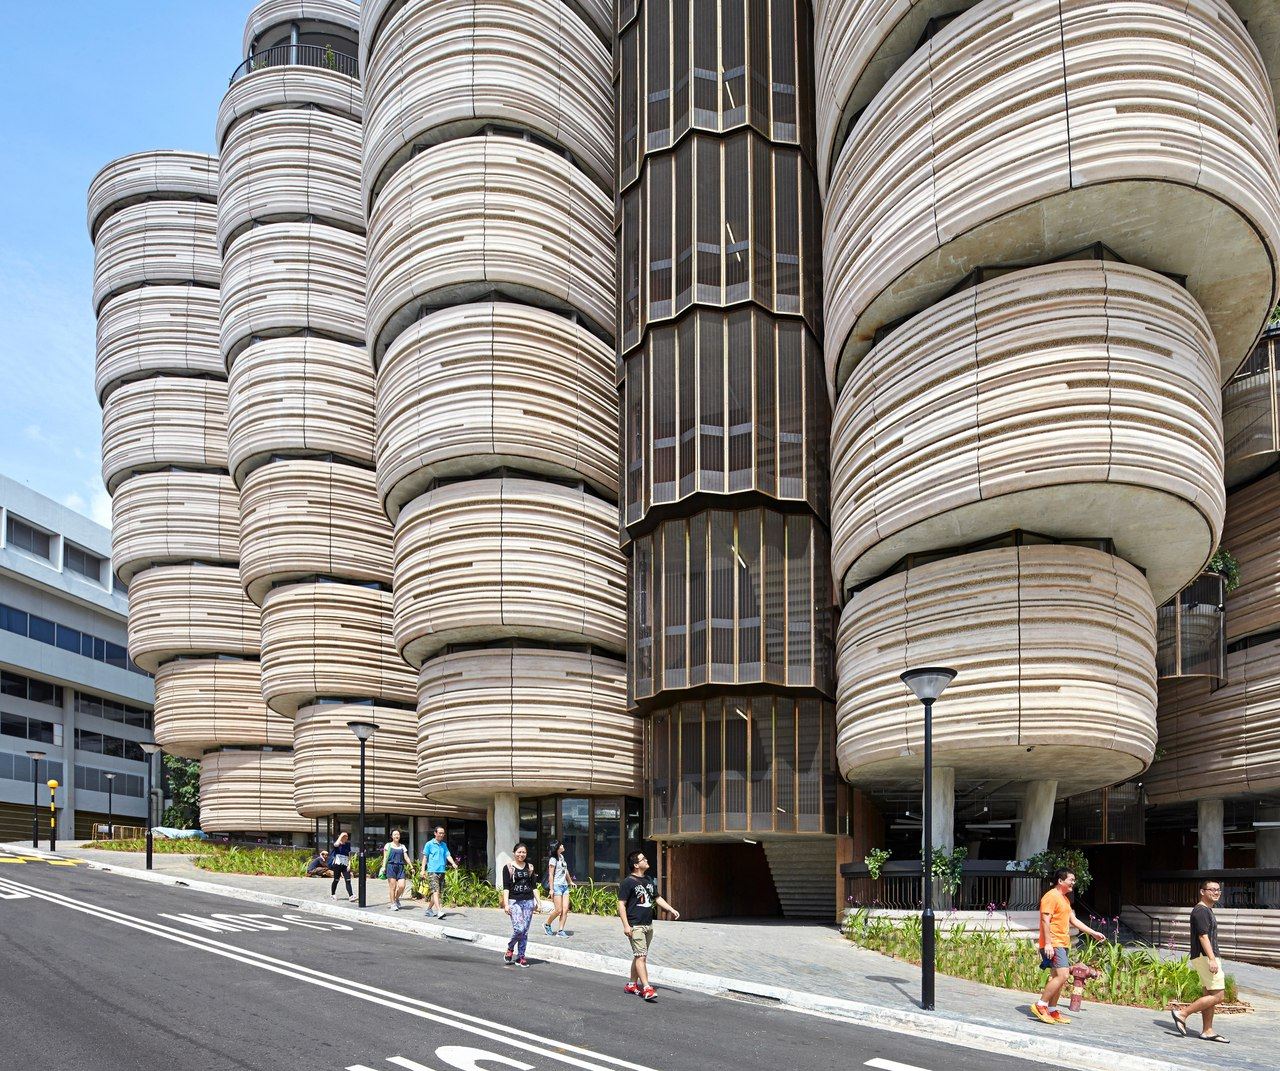 NTU learning hub, Singapore